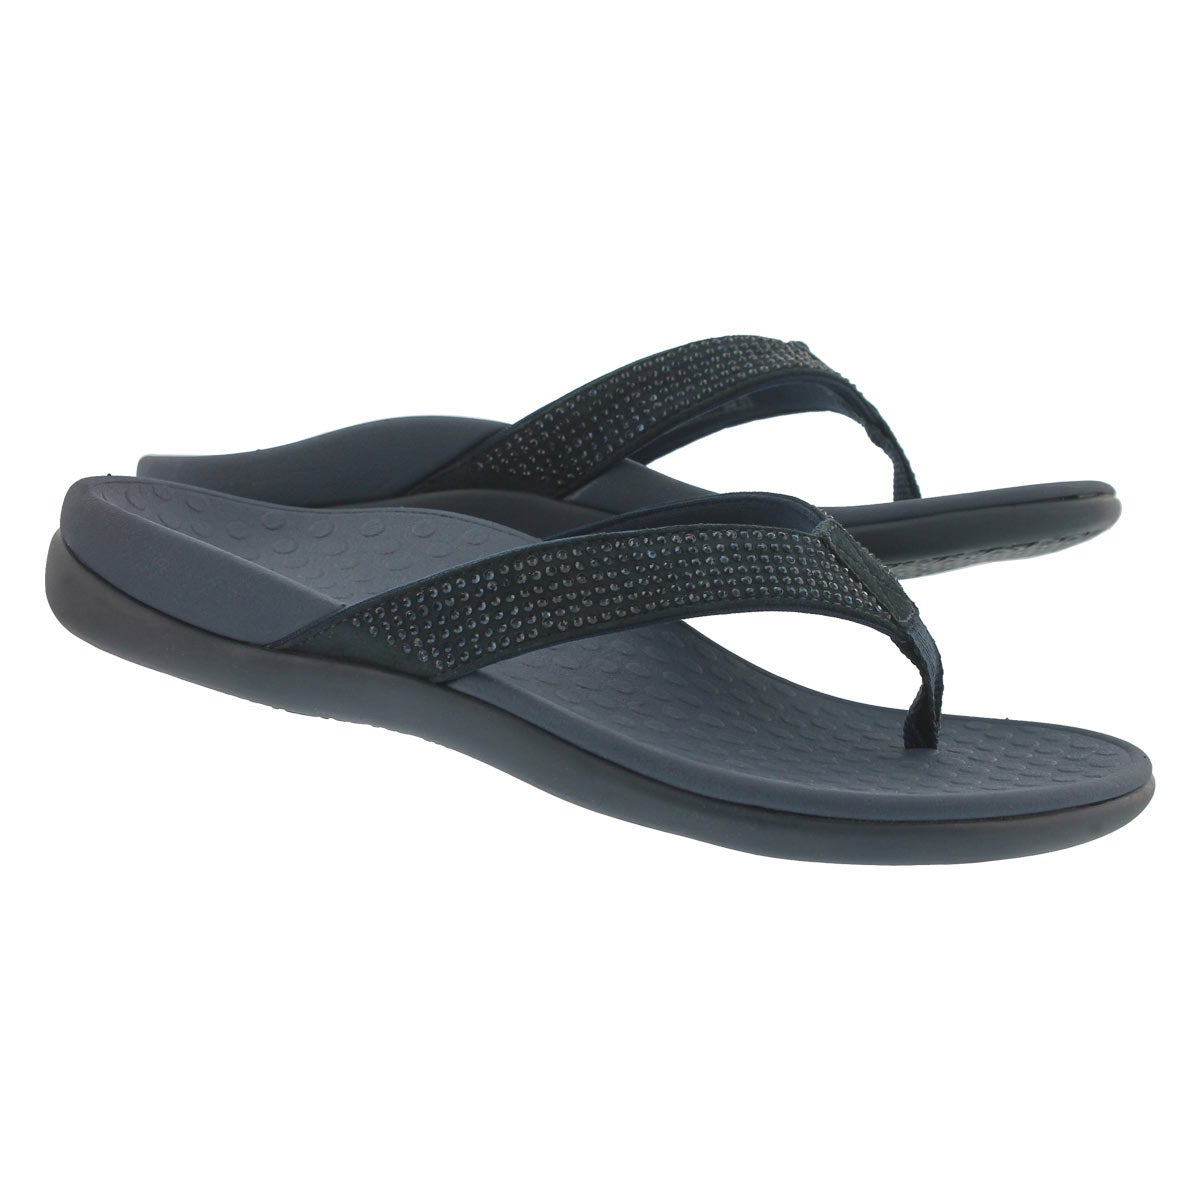 Lds TideRhinestone nvy arch support thng